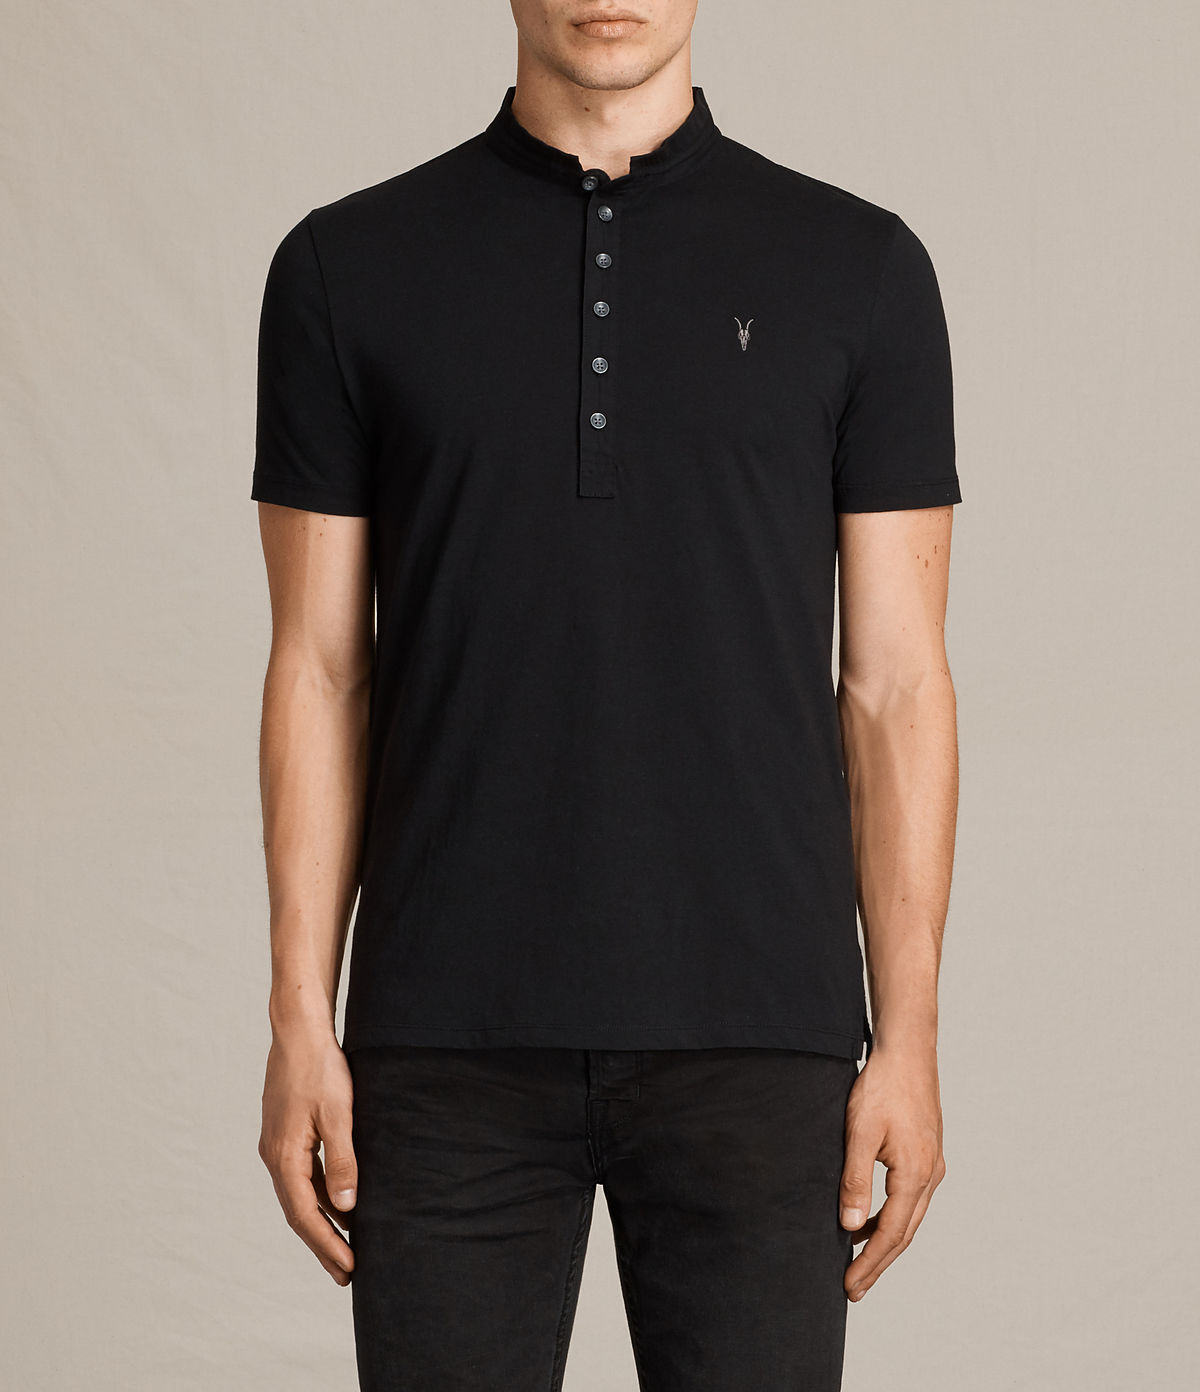 saints-polo-shirt